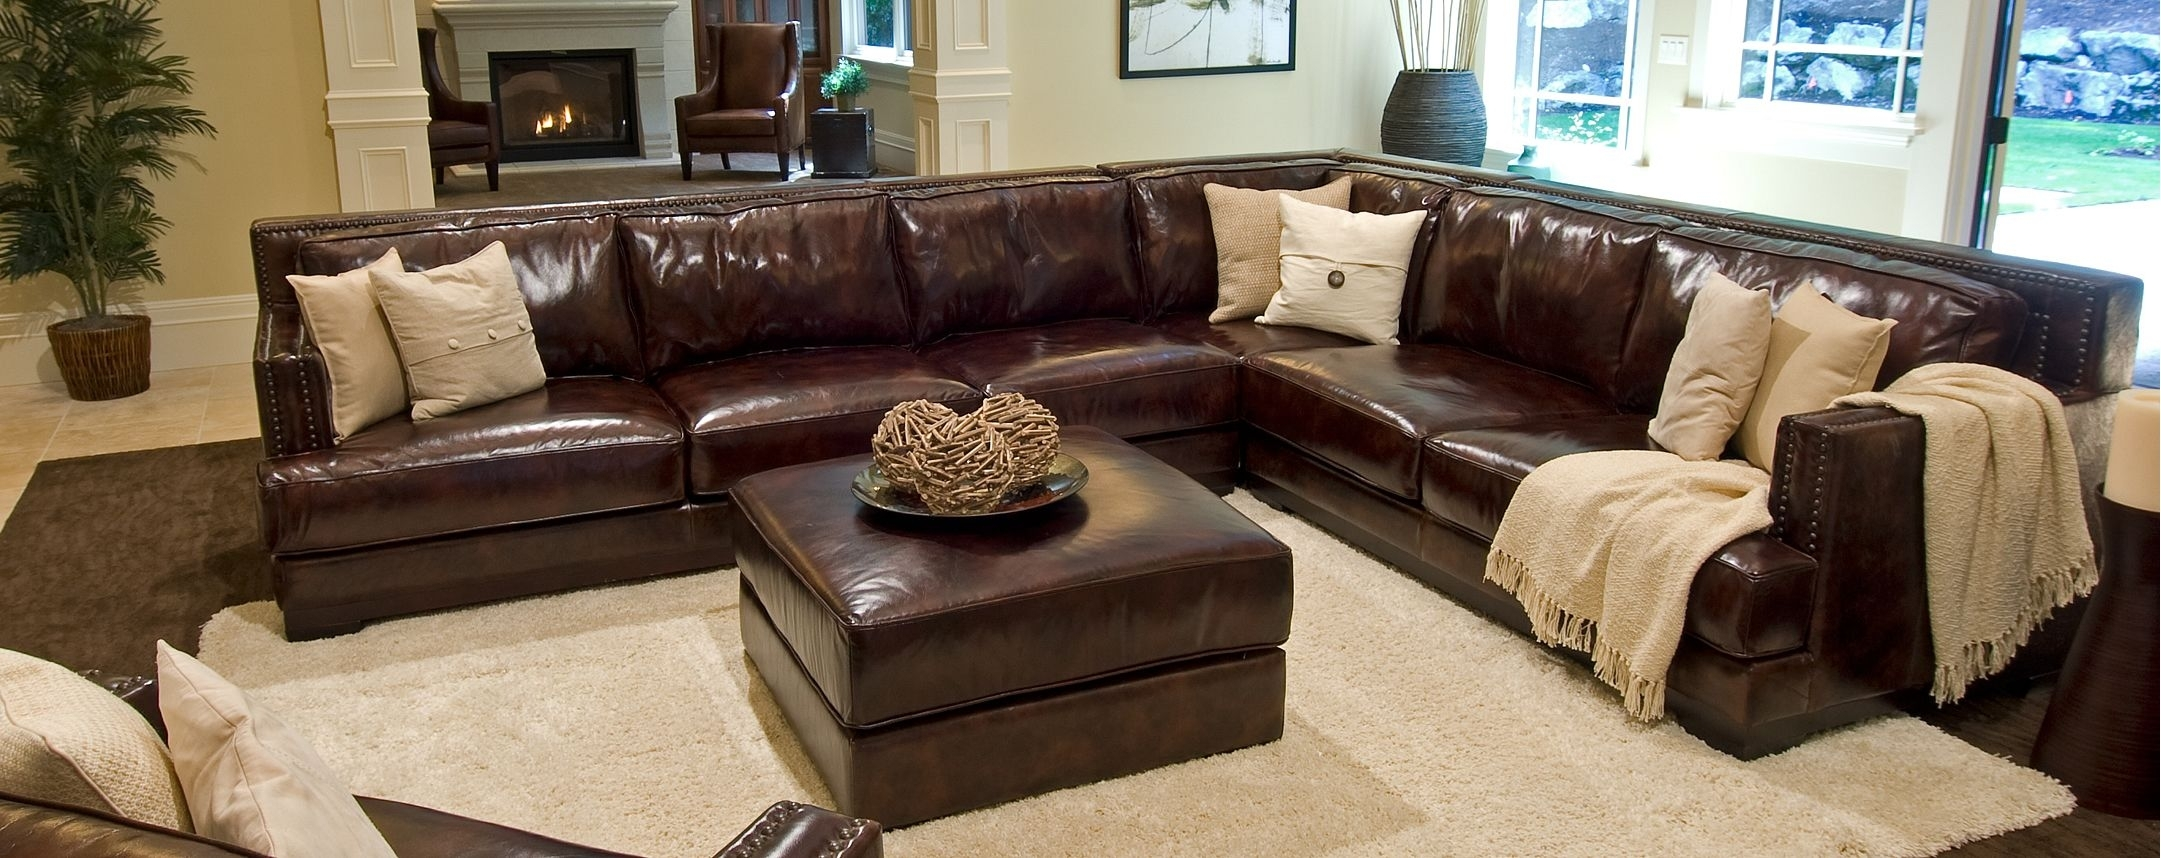 Pinsofascouch On Sofas & Couches | Pinterest | Sofa, Leather With Regard To London Optical Reversible Sofa Chaise Sectionals (View 11 of 25)